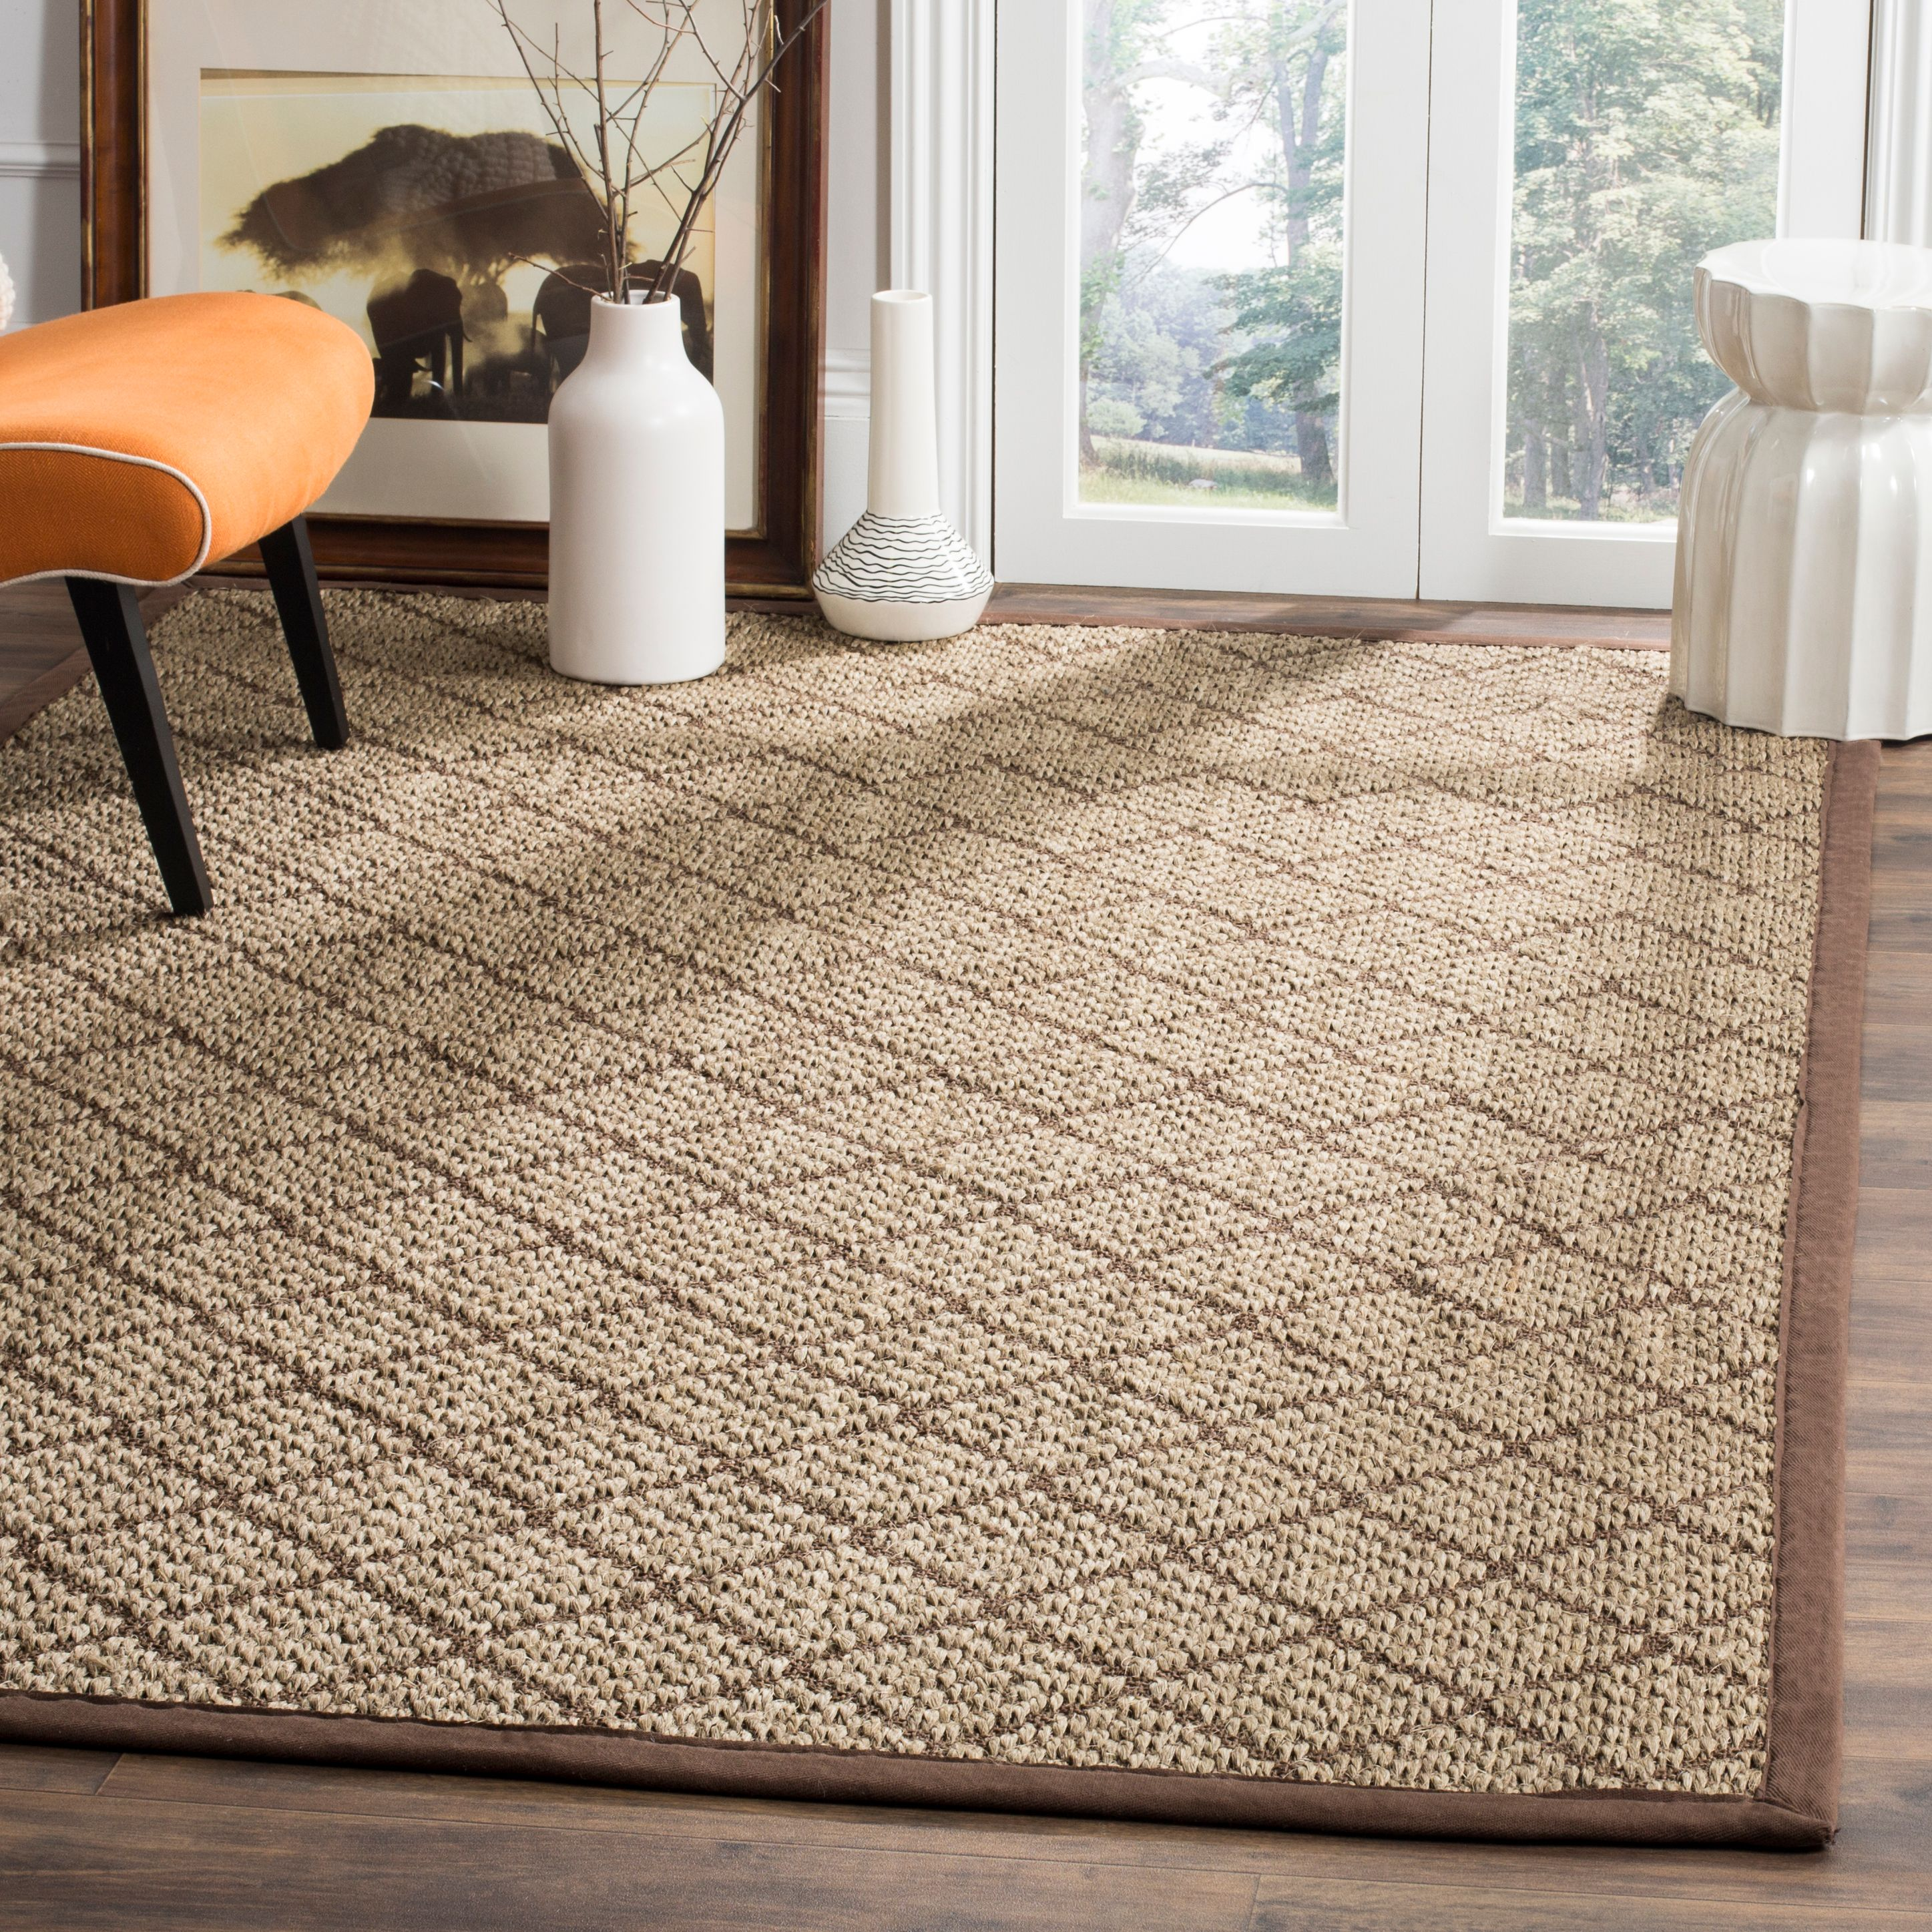 Safavieh Natural Fiber Syeda Geometric Bordered Area Rug or Runner